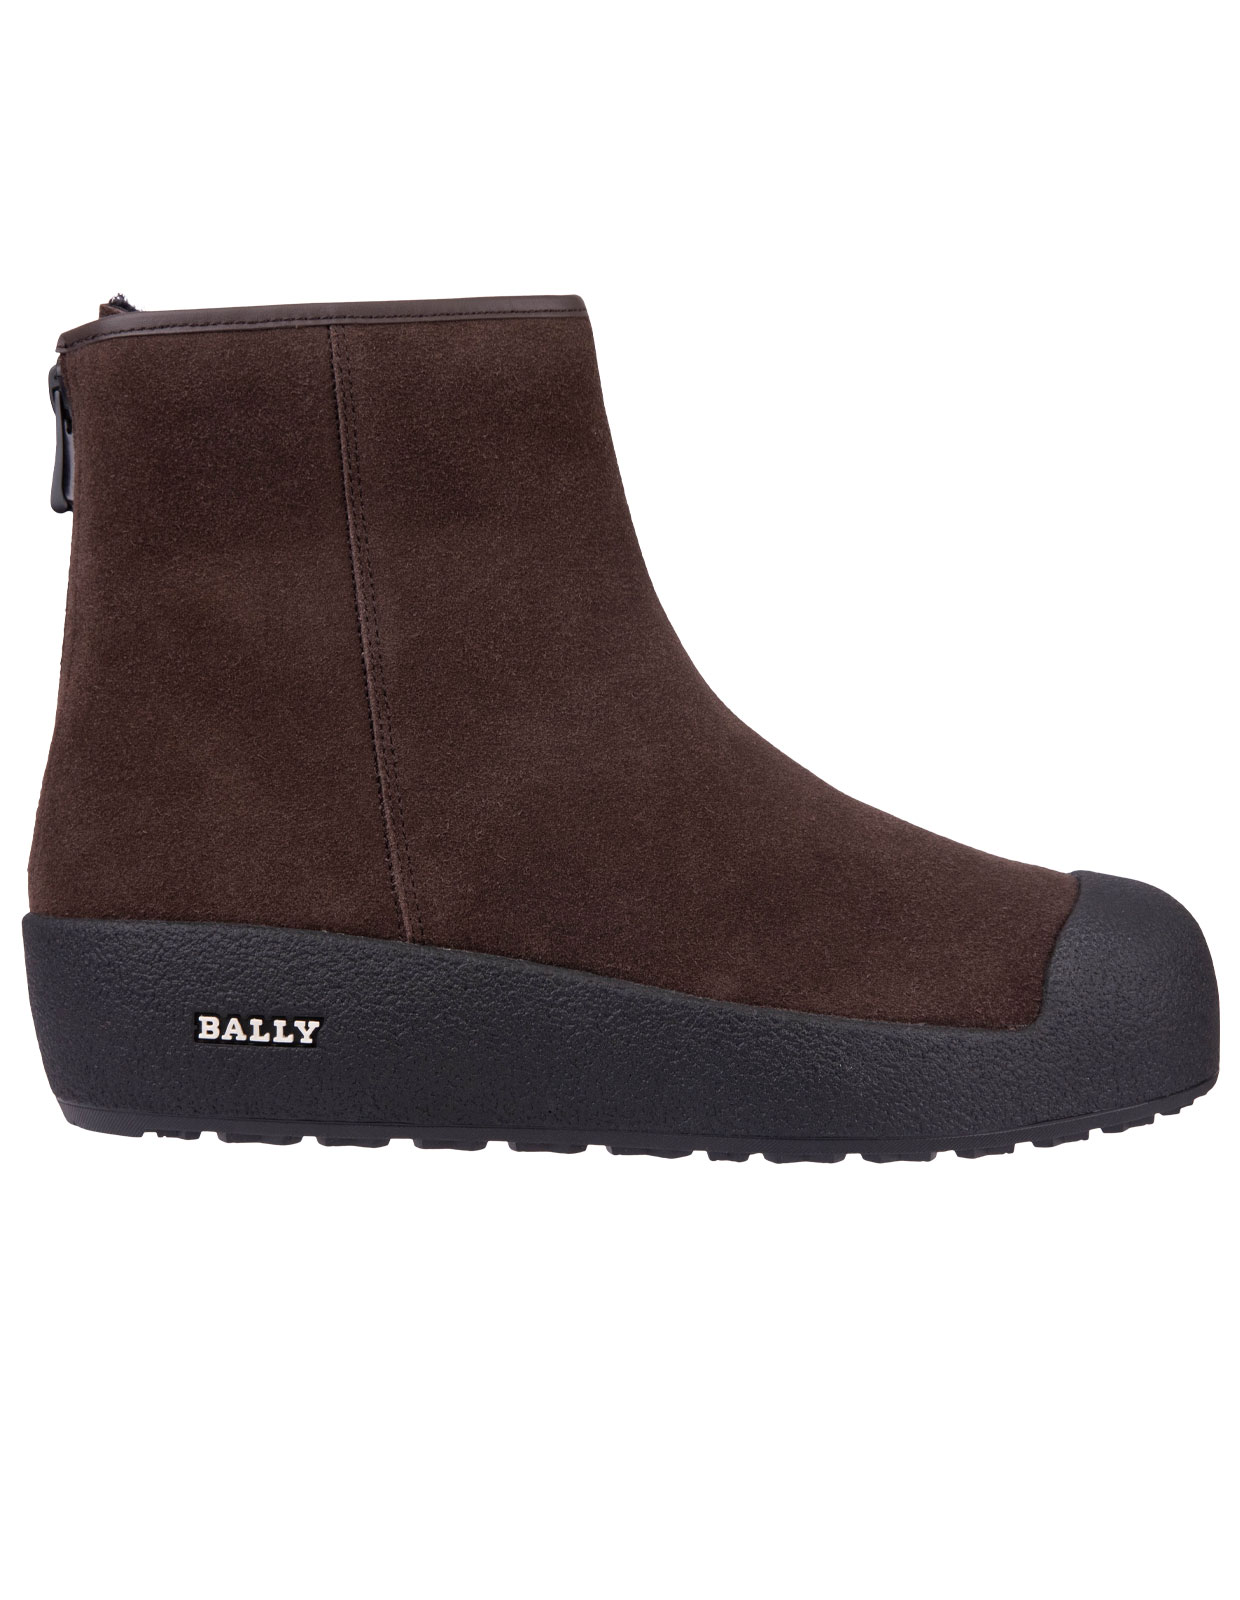 Bally curling Coffe